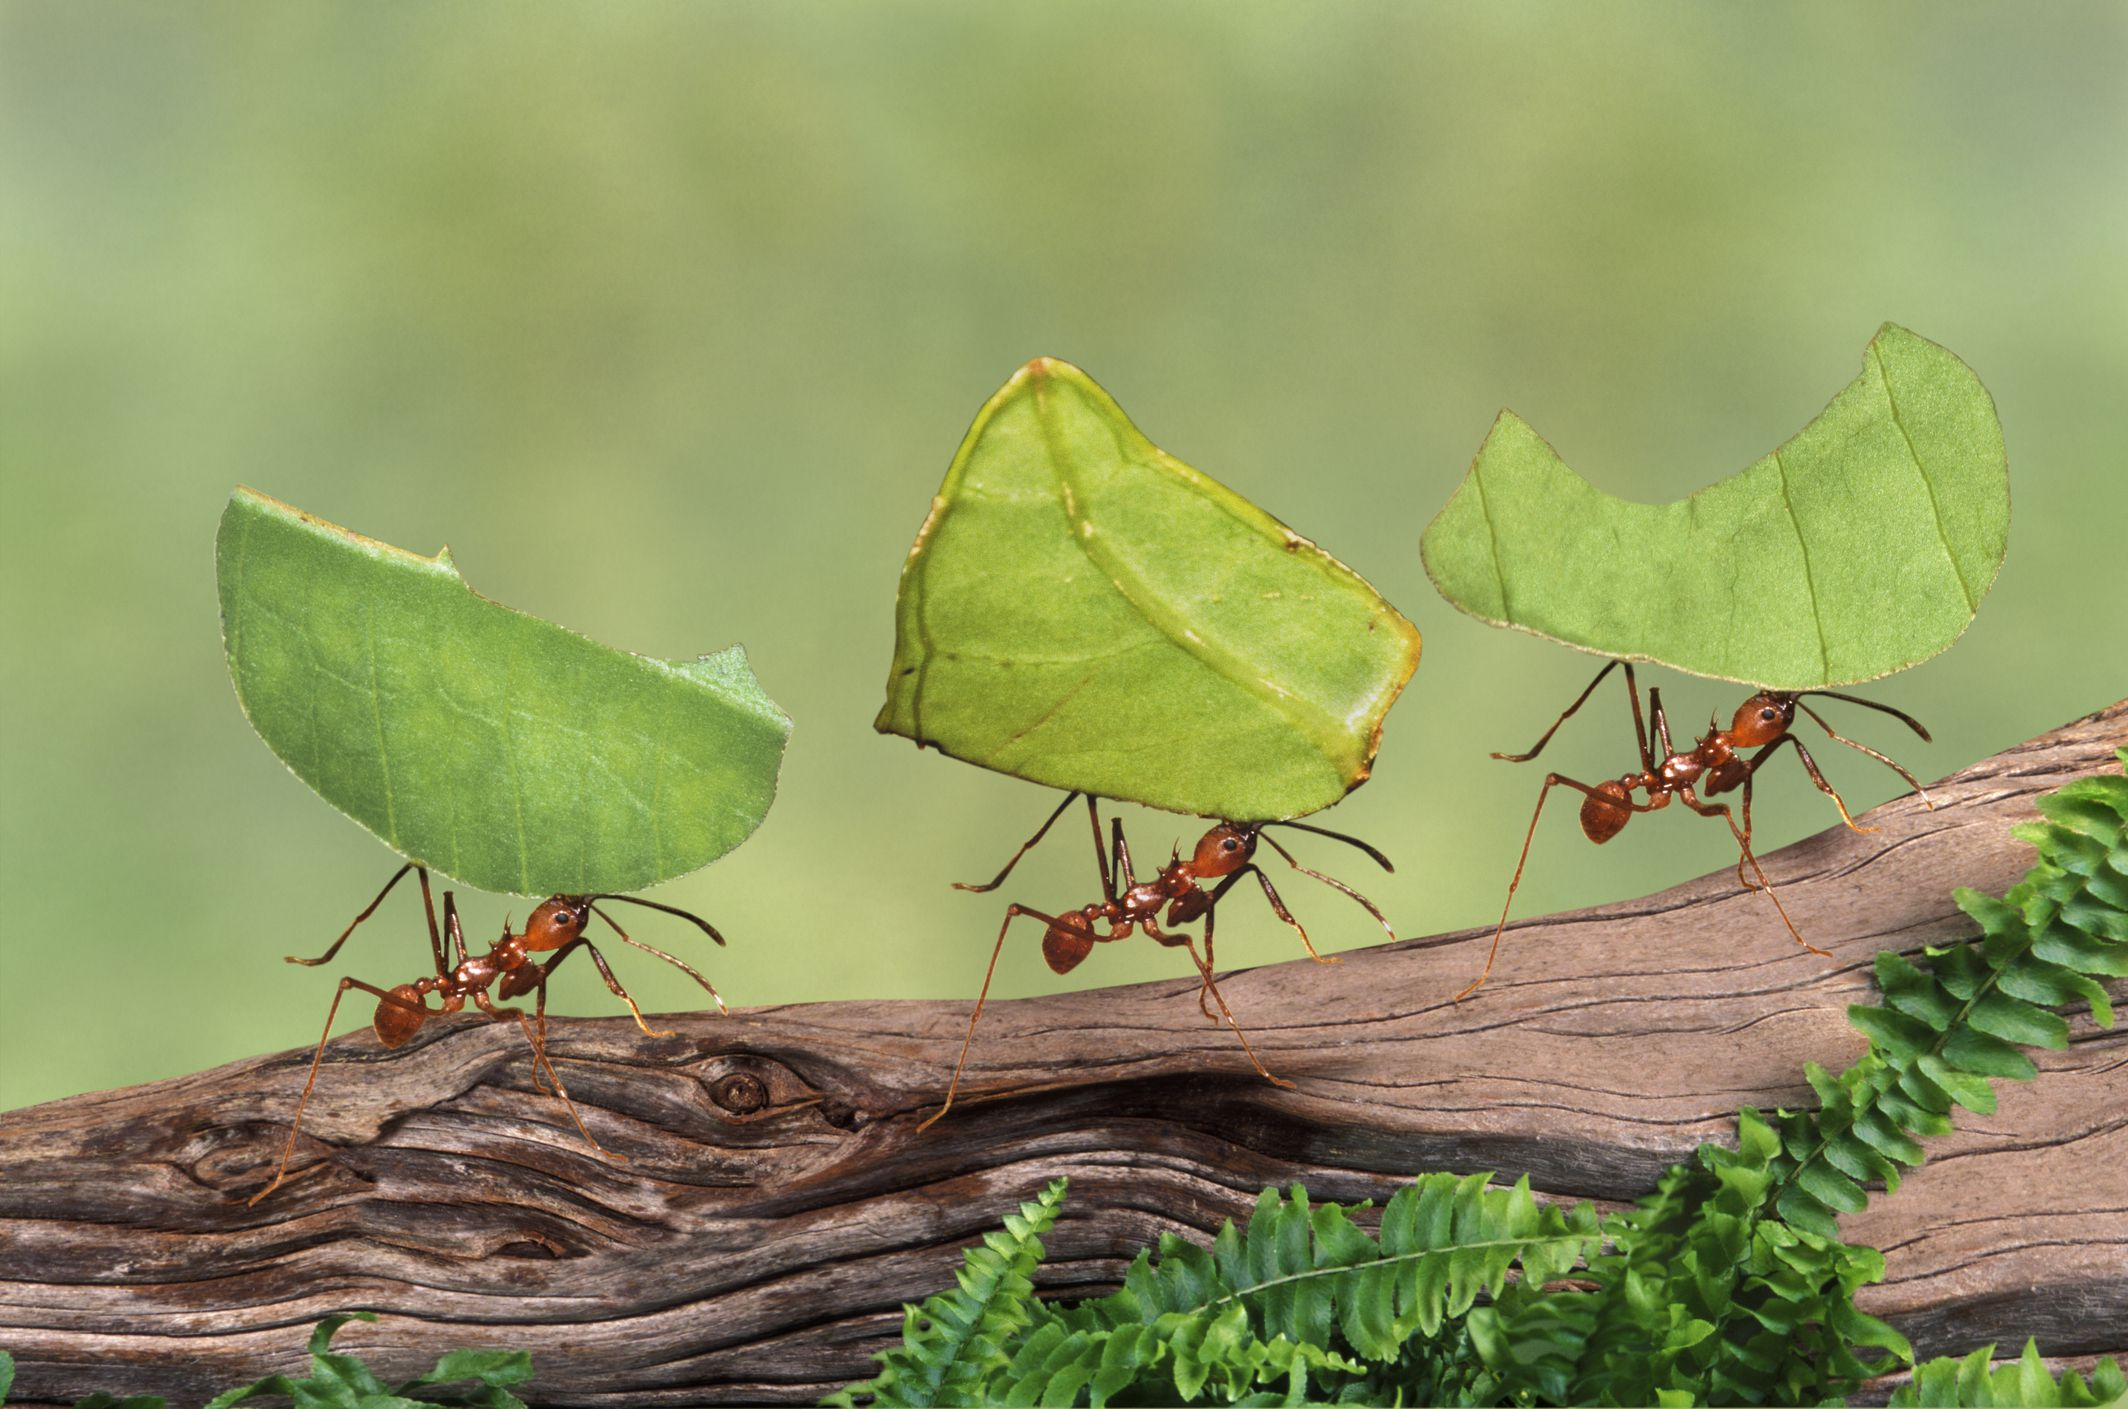 10 fascinating facts about ants and ant behavior